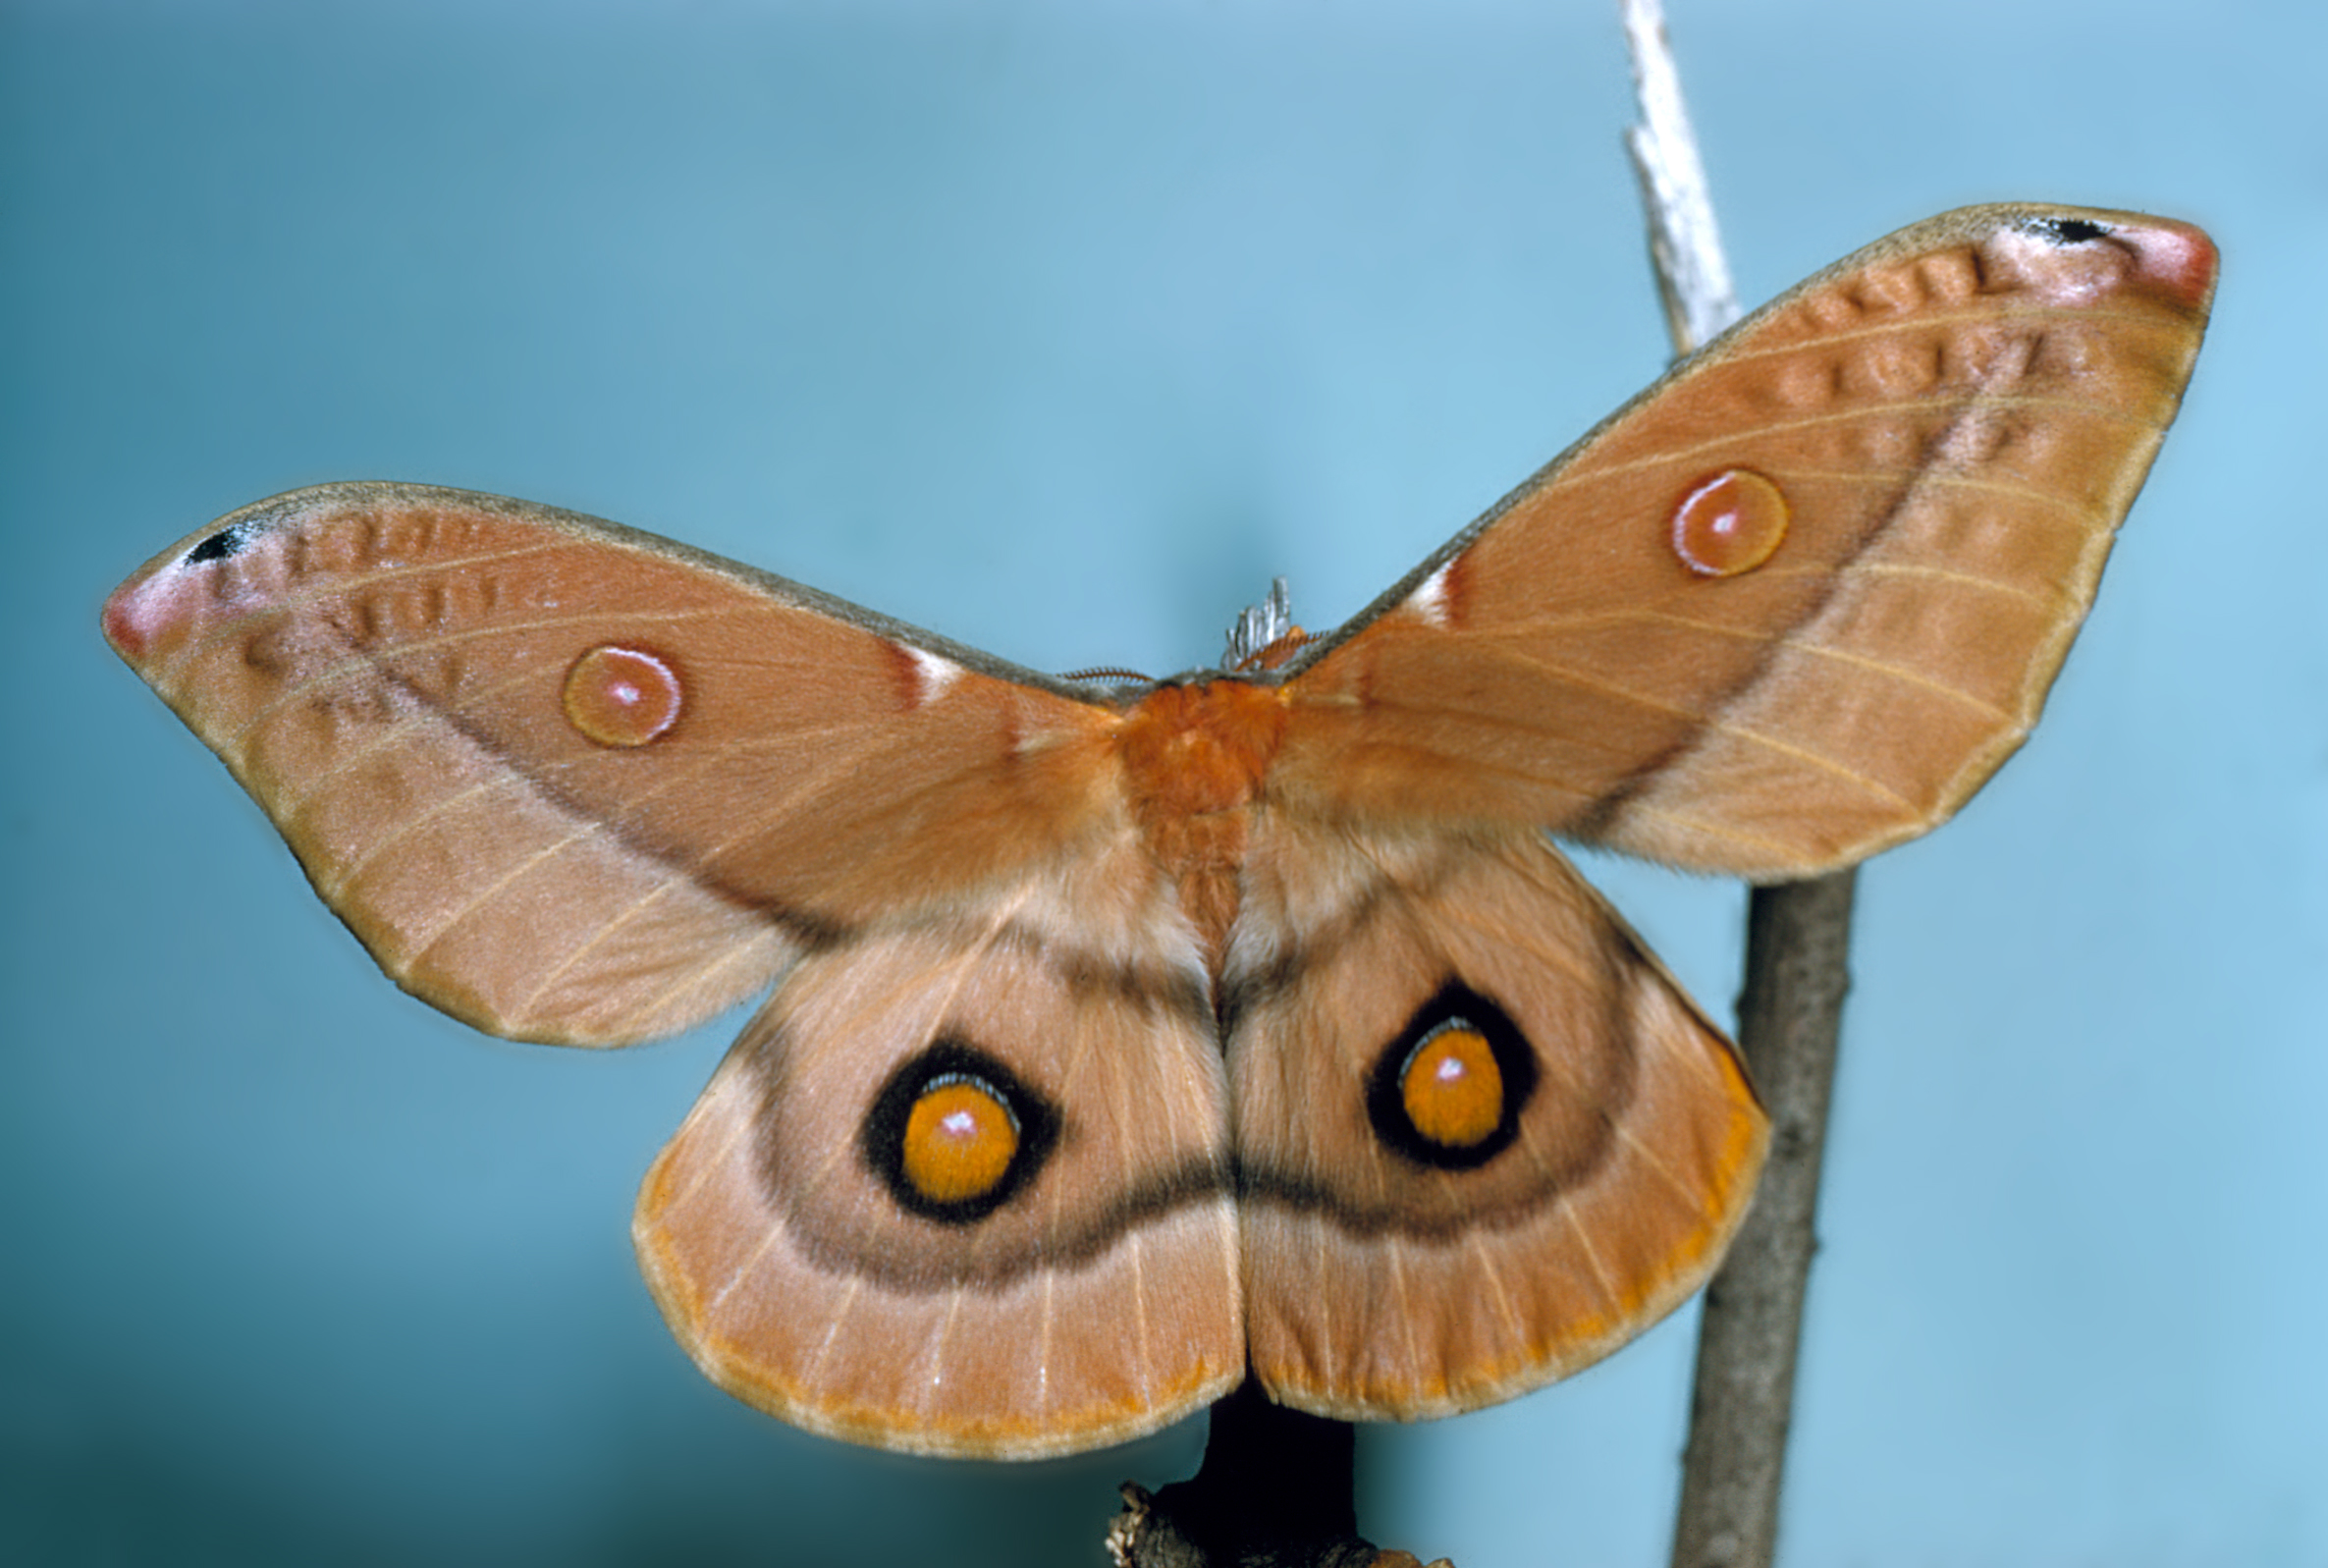 A emperor gum moth with wings open